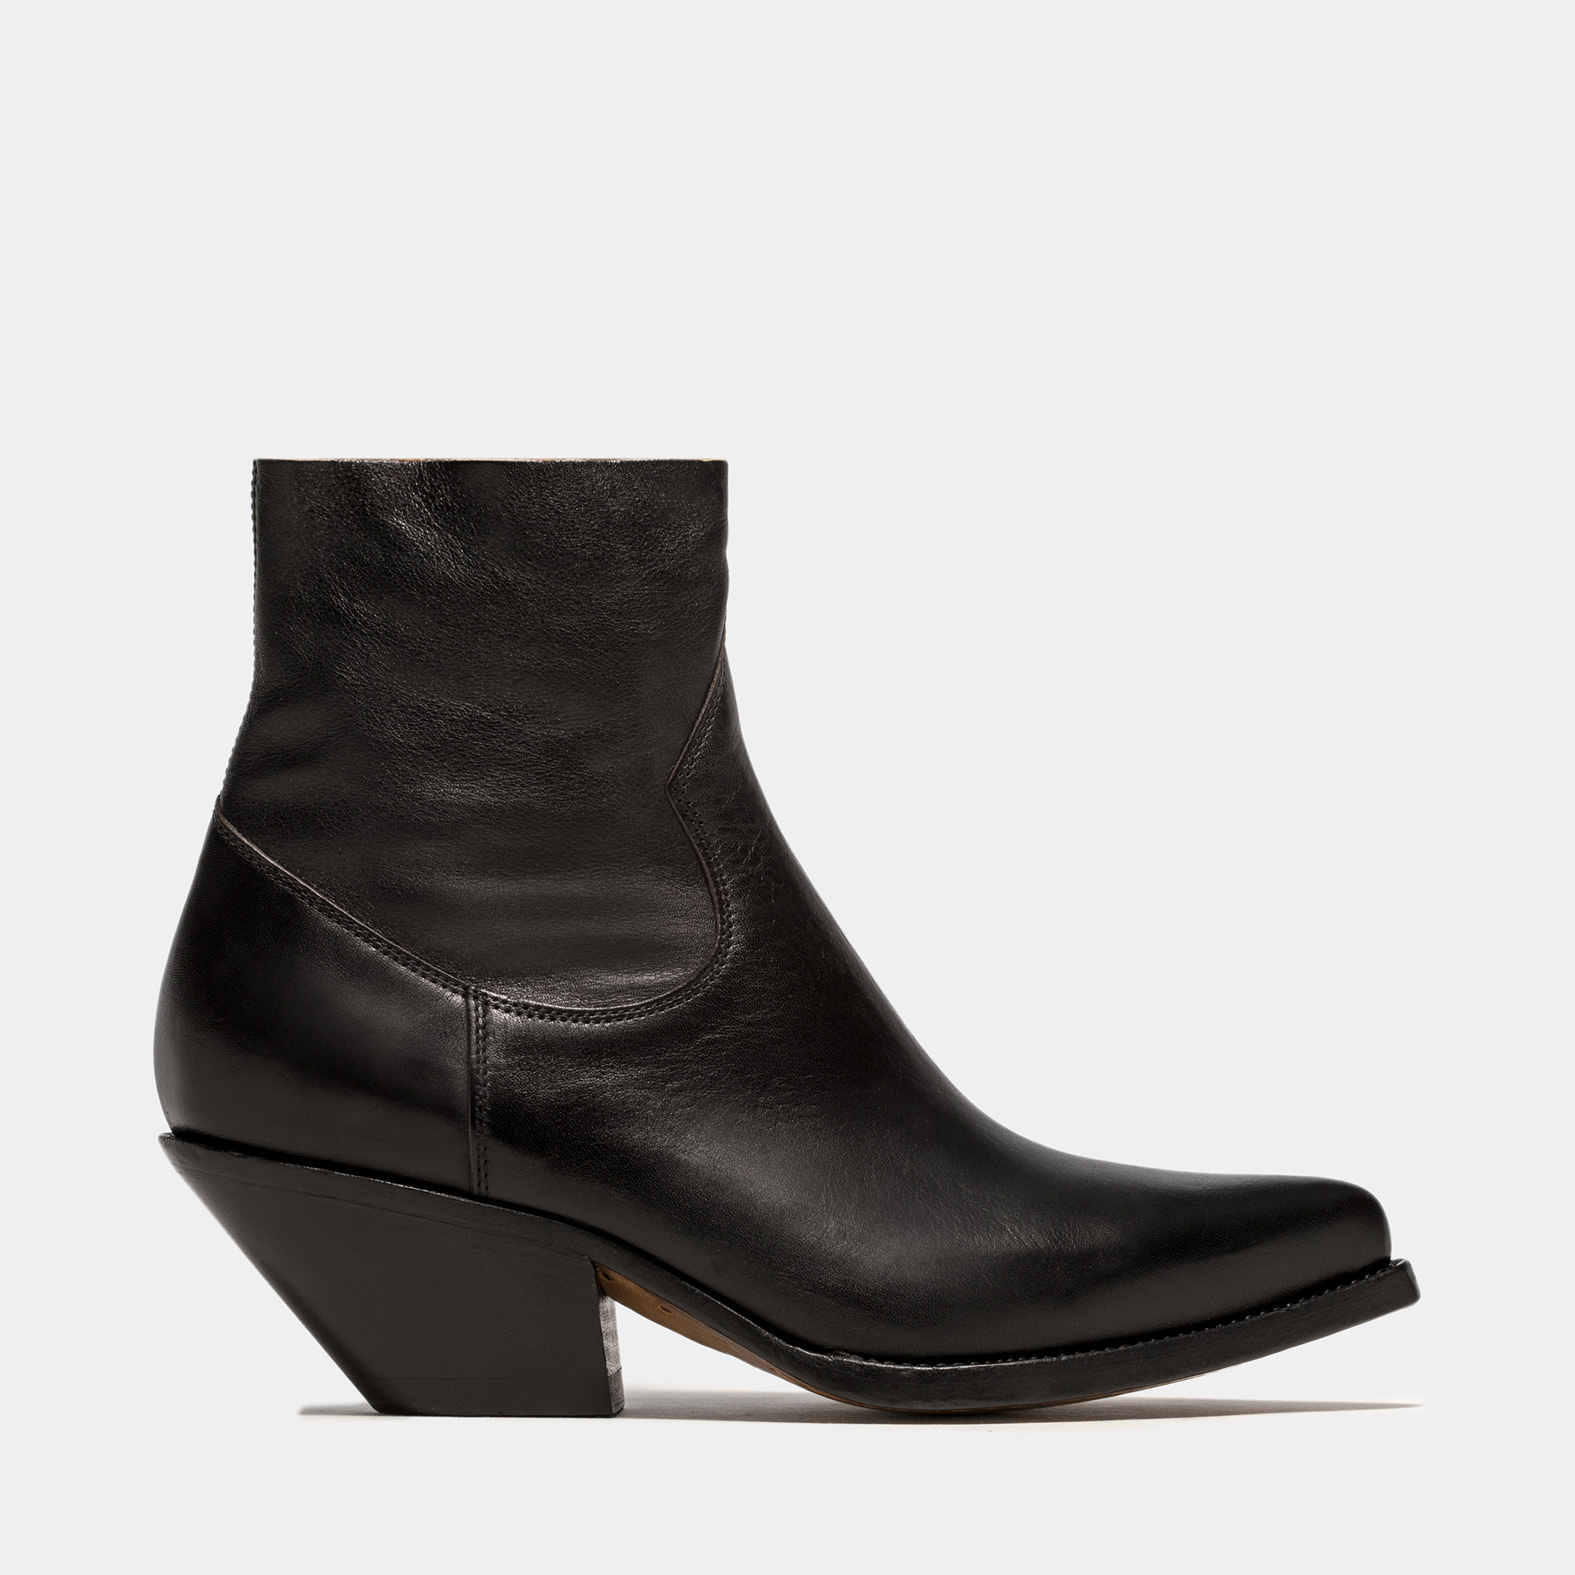 BUTTERO: ELISE DURANGO BOOTS IN BLACK LEATHER